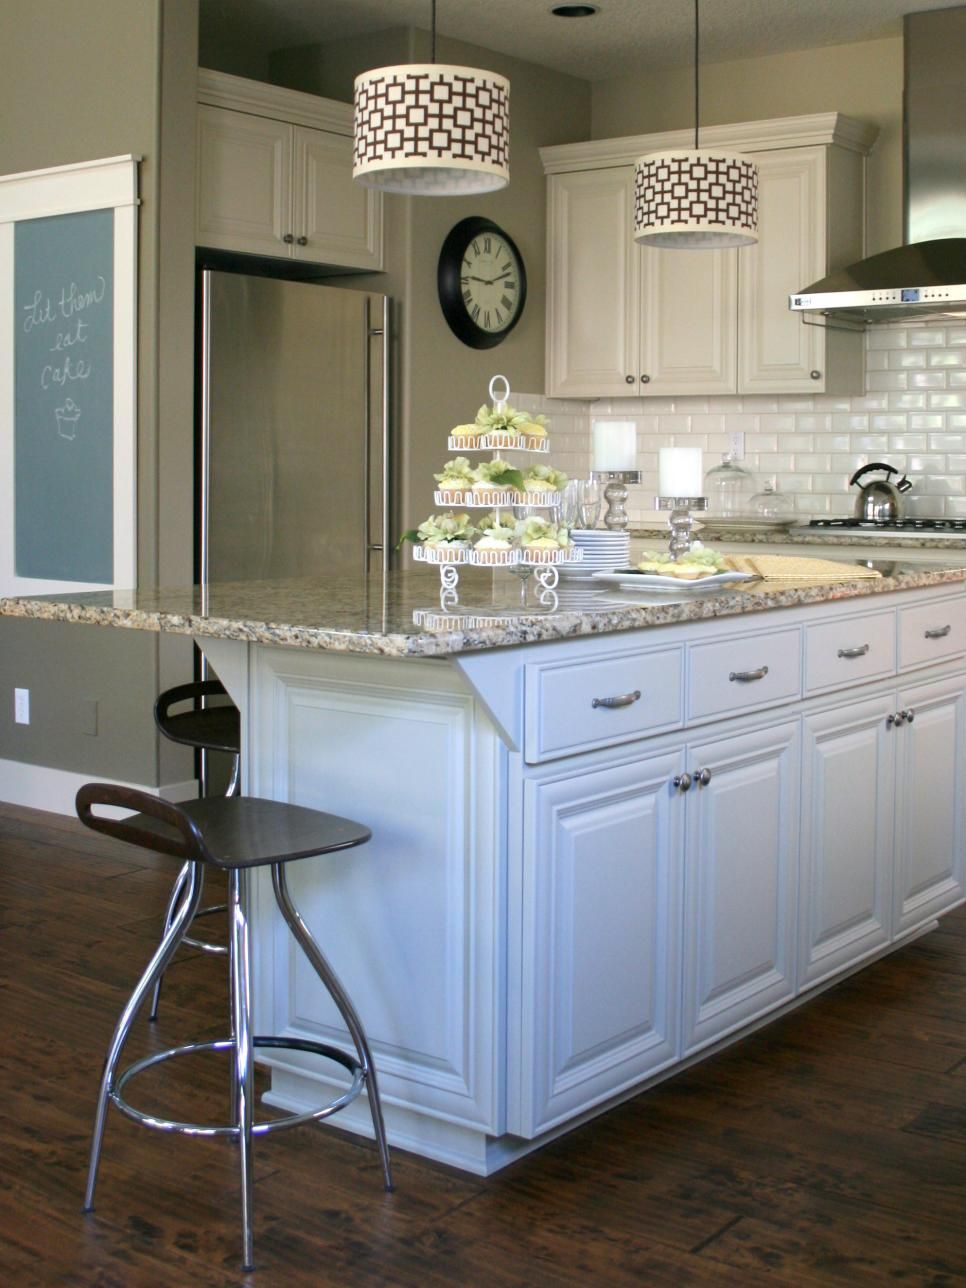 White cabinets and kitchen island complement the white tile ...